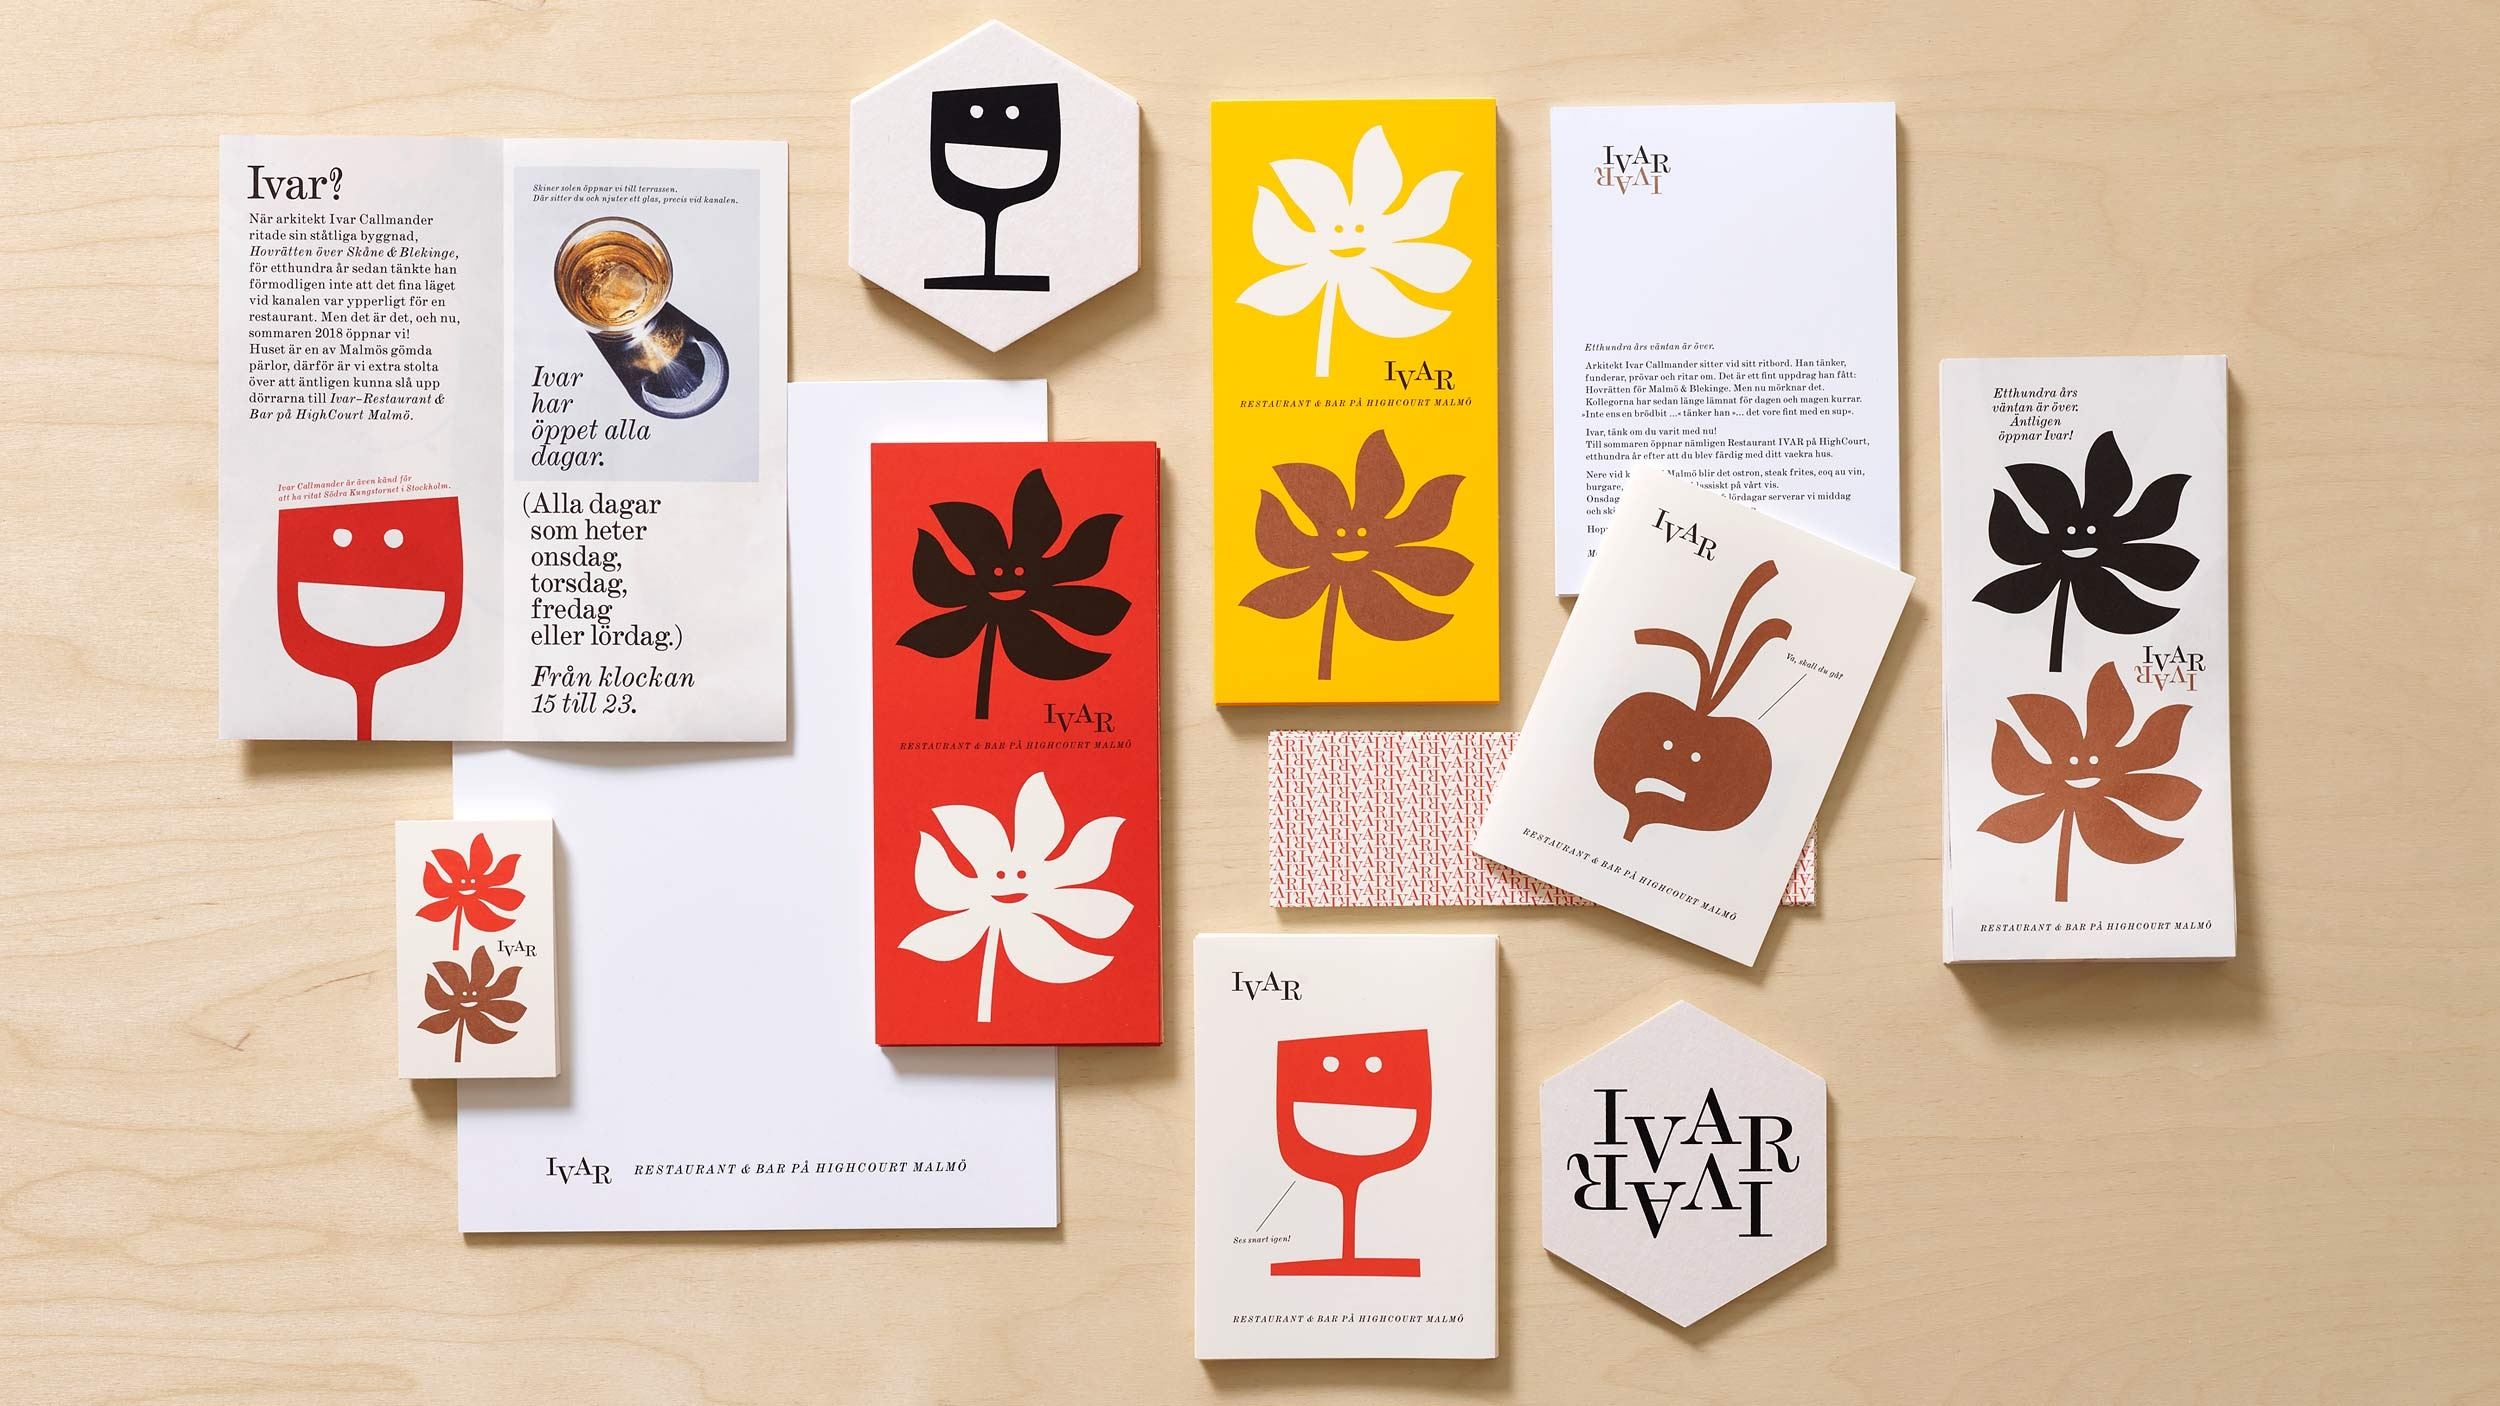 Ivar Restaurant – graphic identity